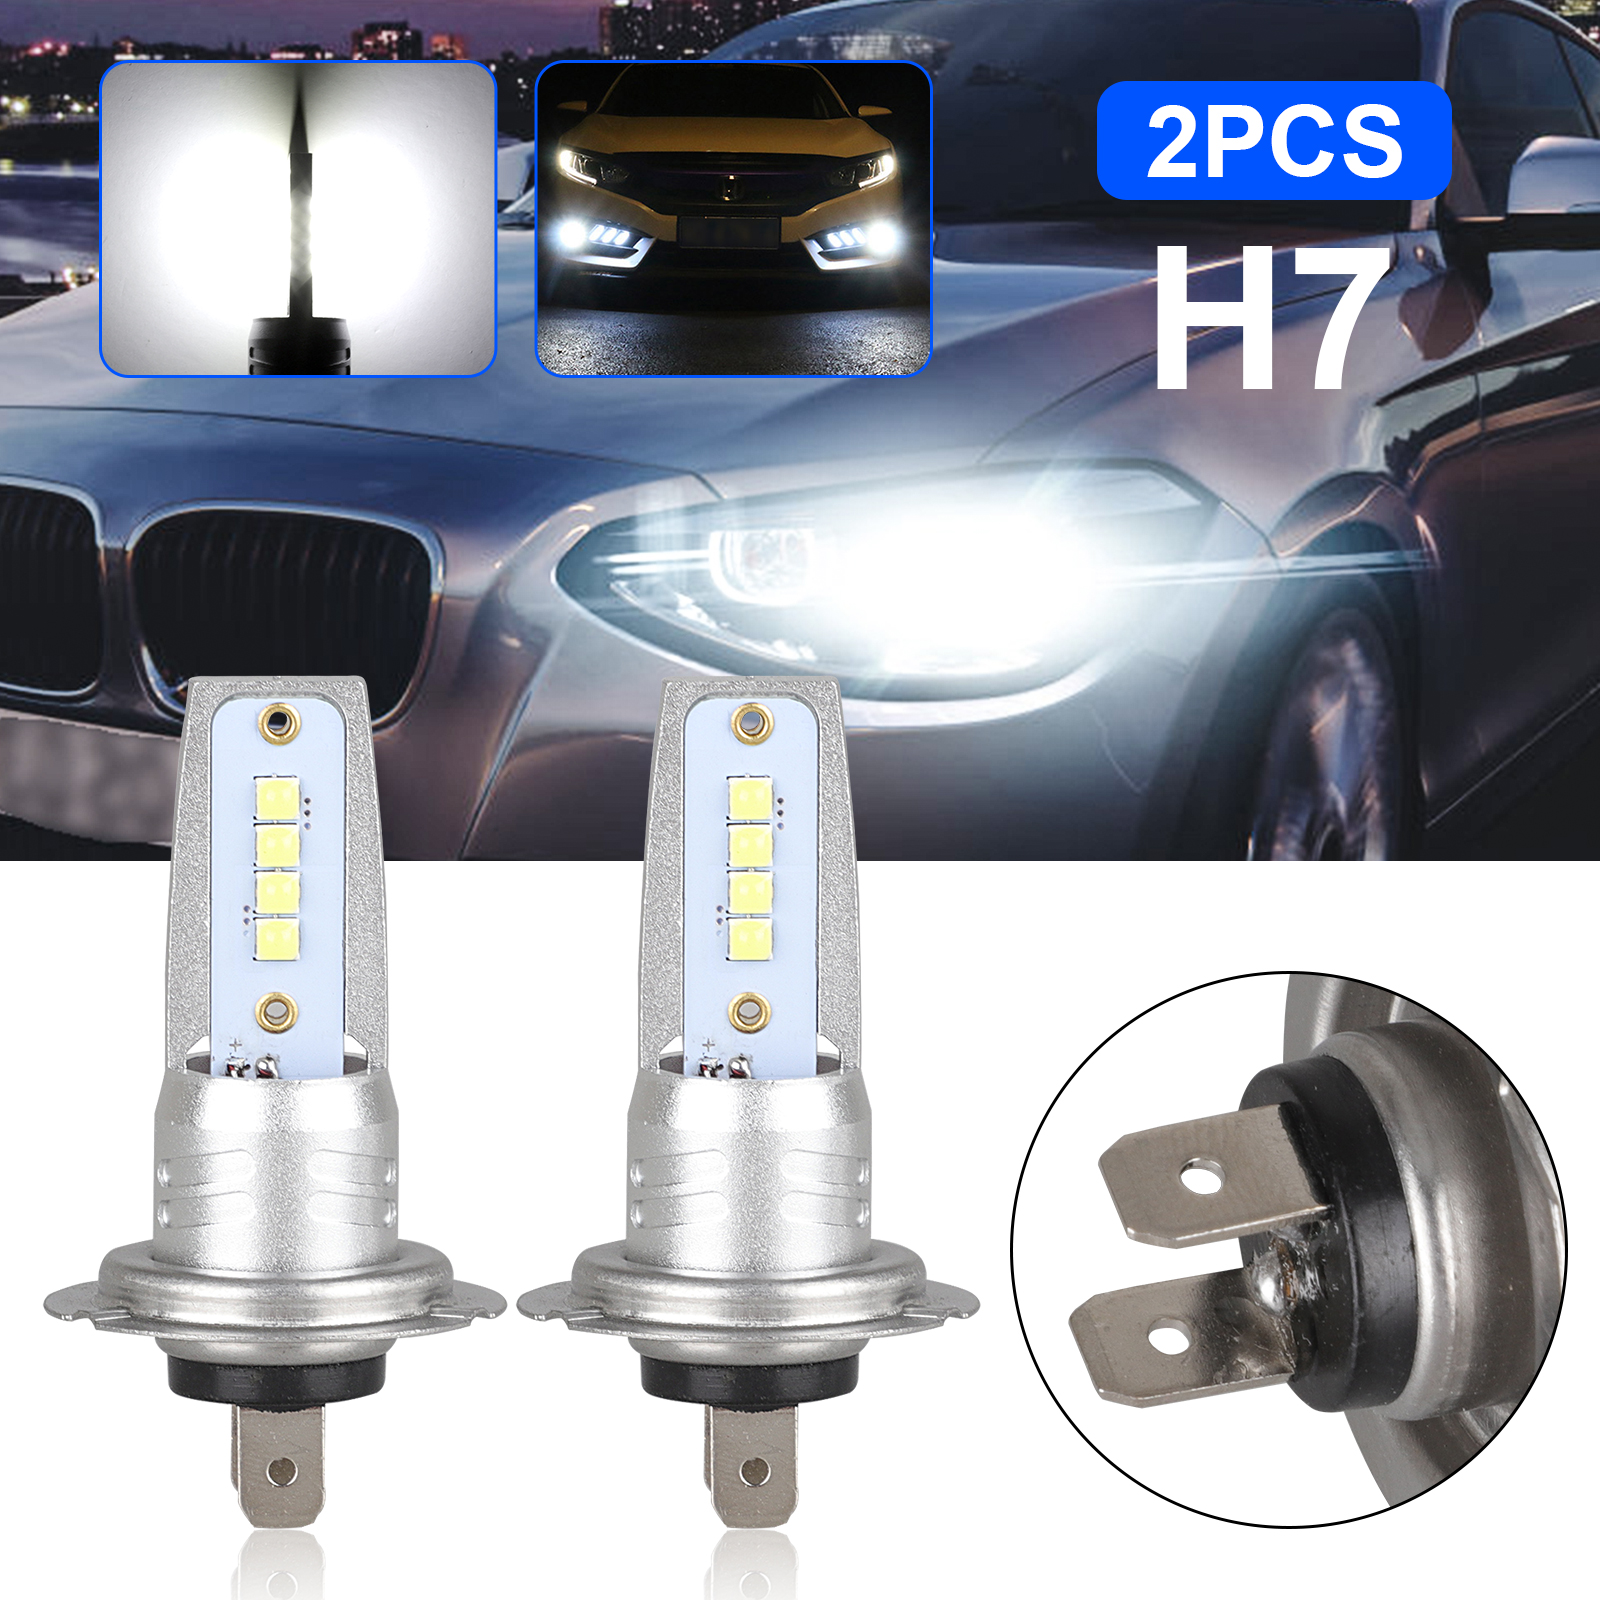 2x H7 LED Headlight Bulbs Kit High Low Beam 80W 6000LM Super